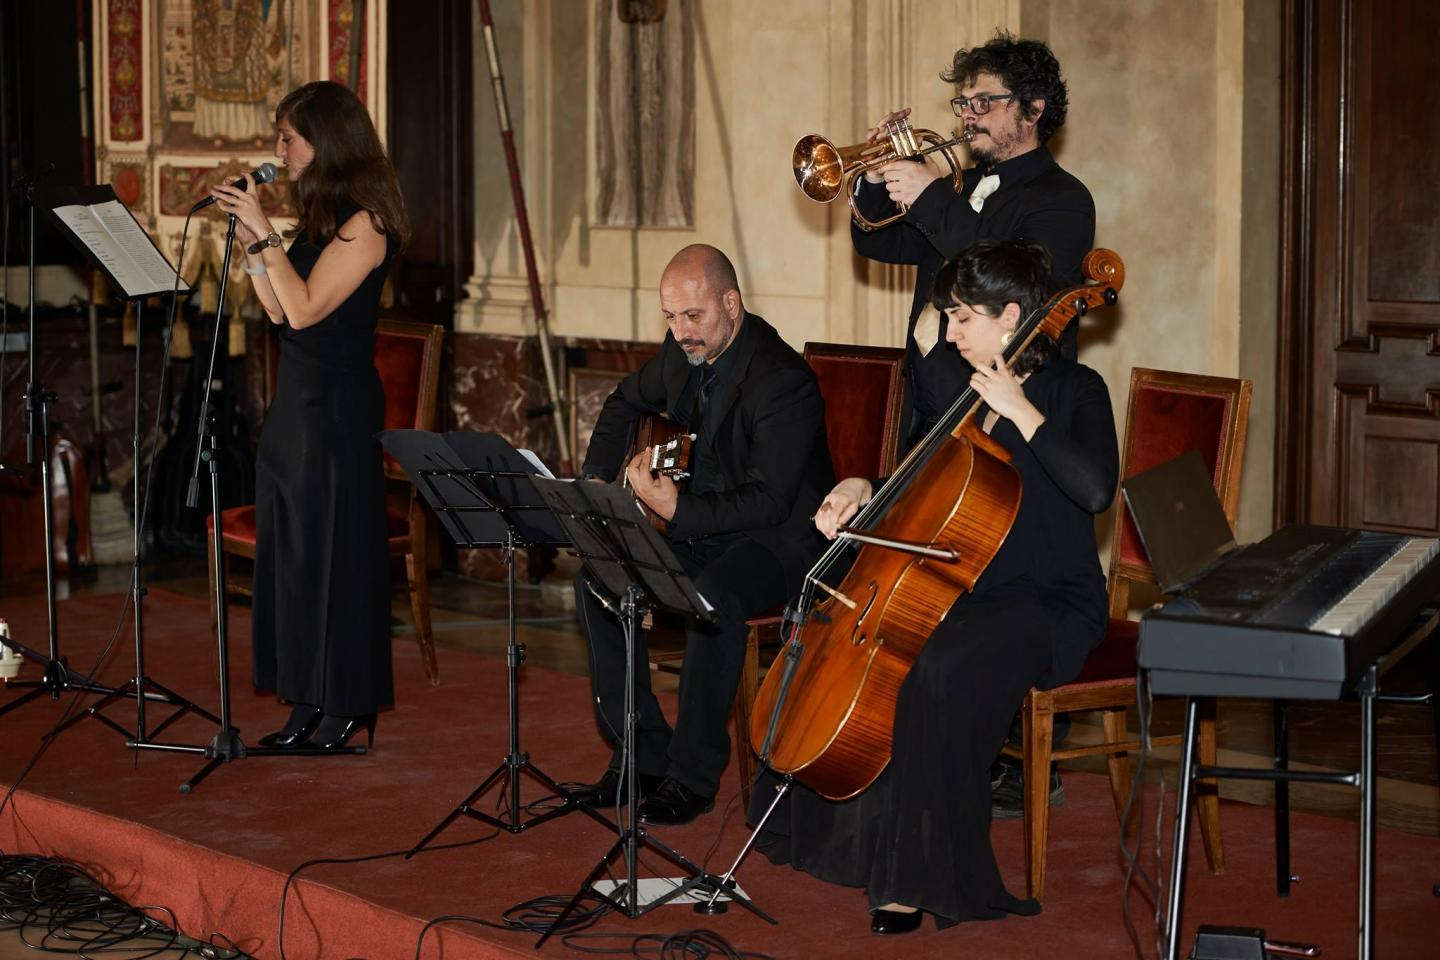 Concert of Goldene Medine ensemble